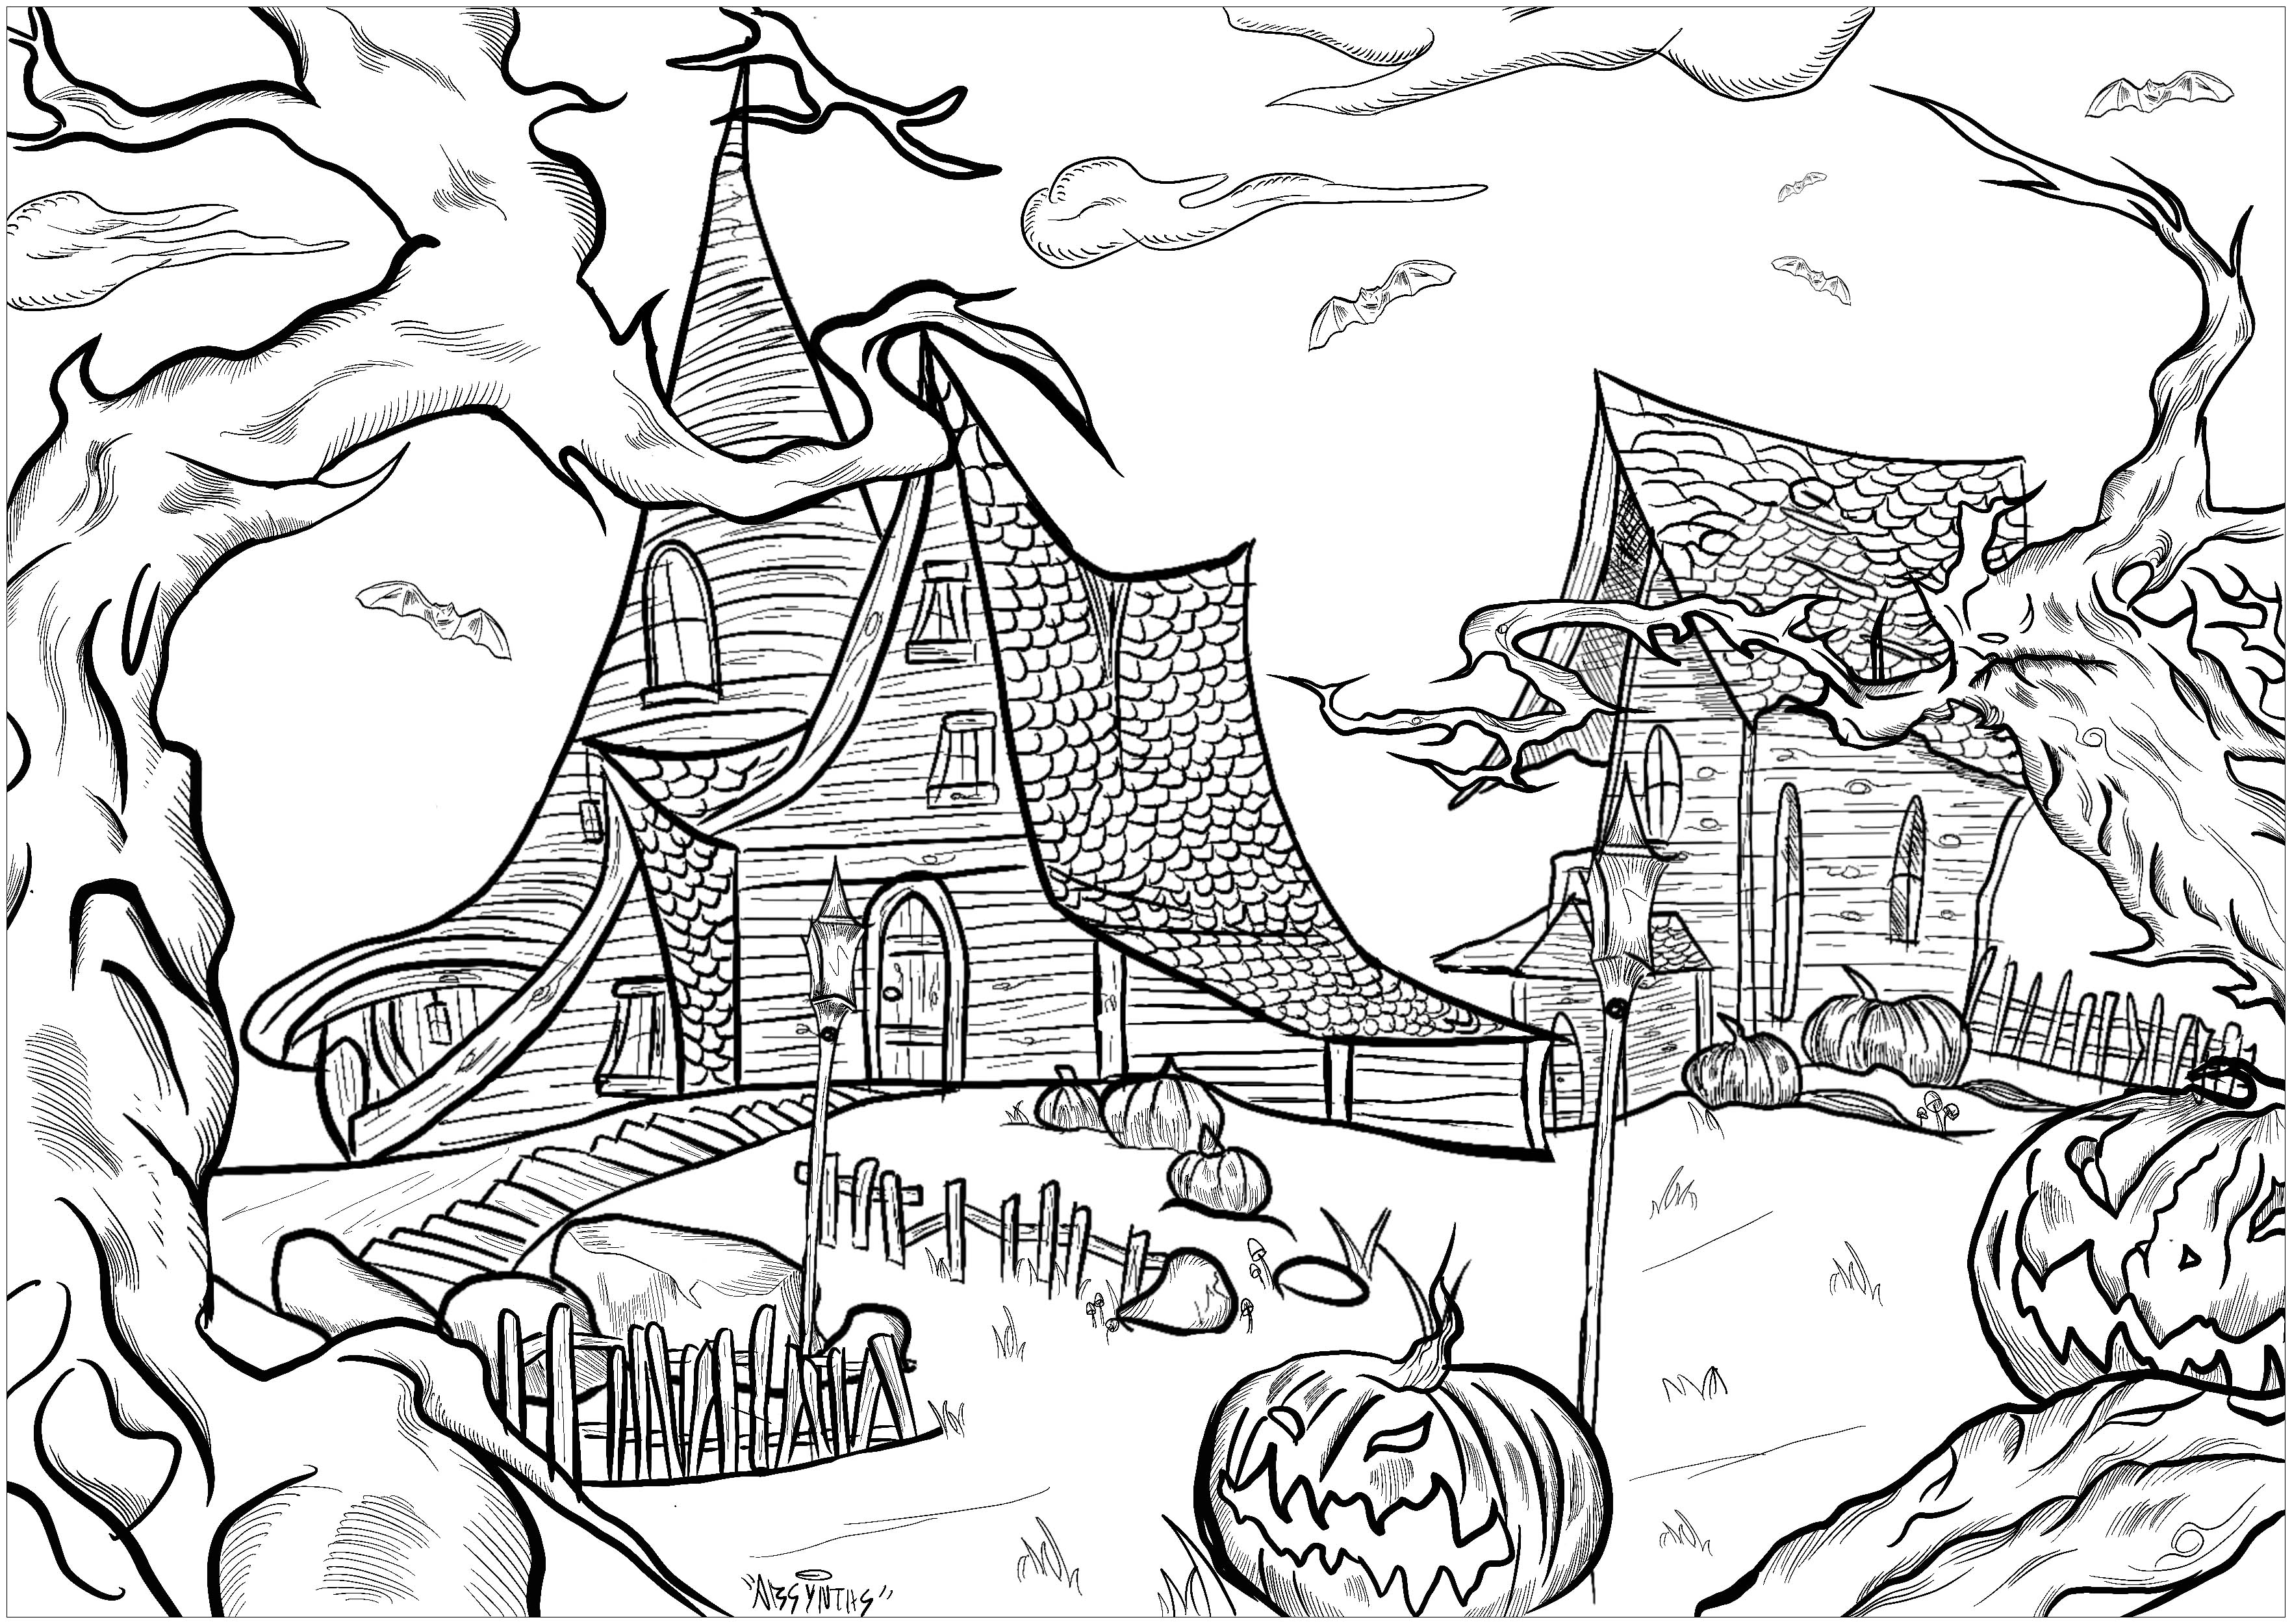 Two haunted houses in a nightmarish landscape ! Threatening trees, Halloween pumpkins, bats ....